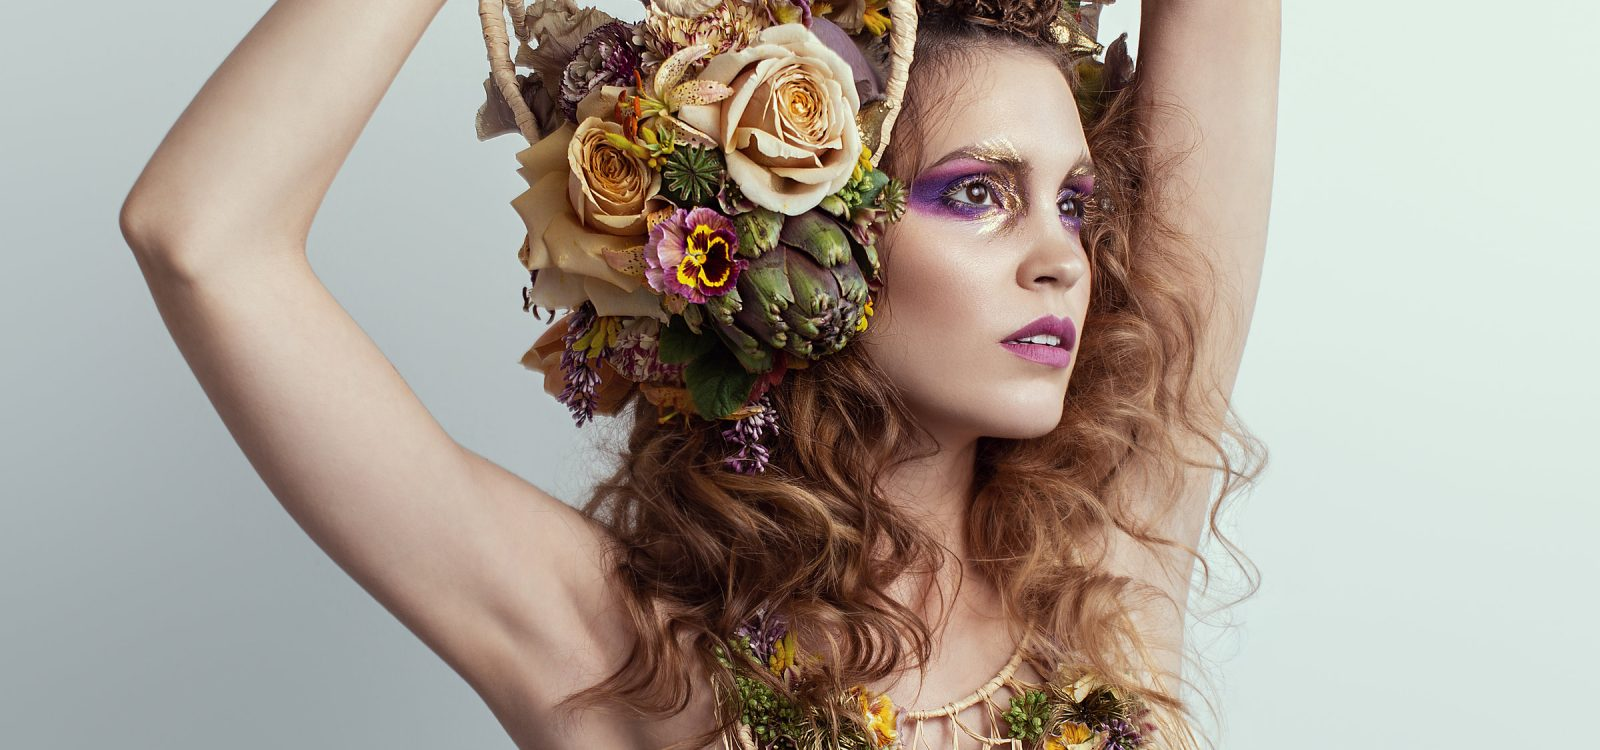 Floral Wearable Art by Tobey Nelson image by Shannon Beauclair photography (8)